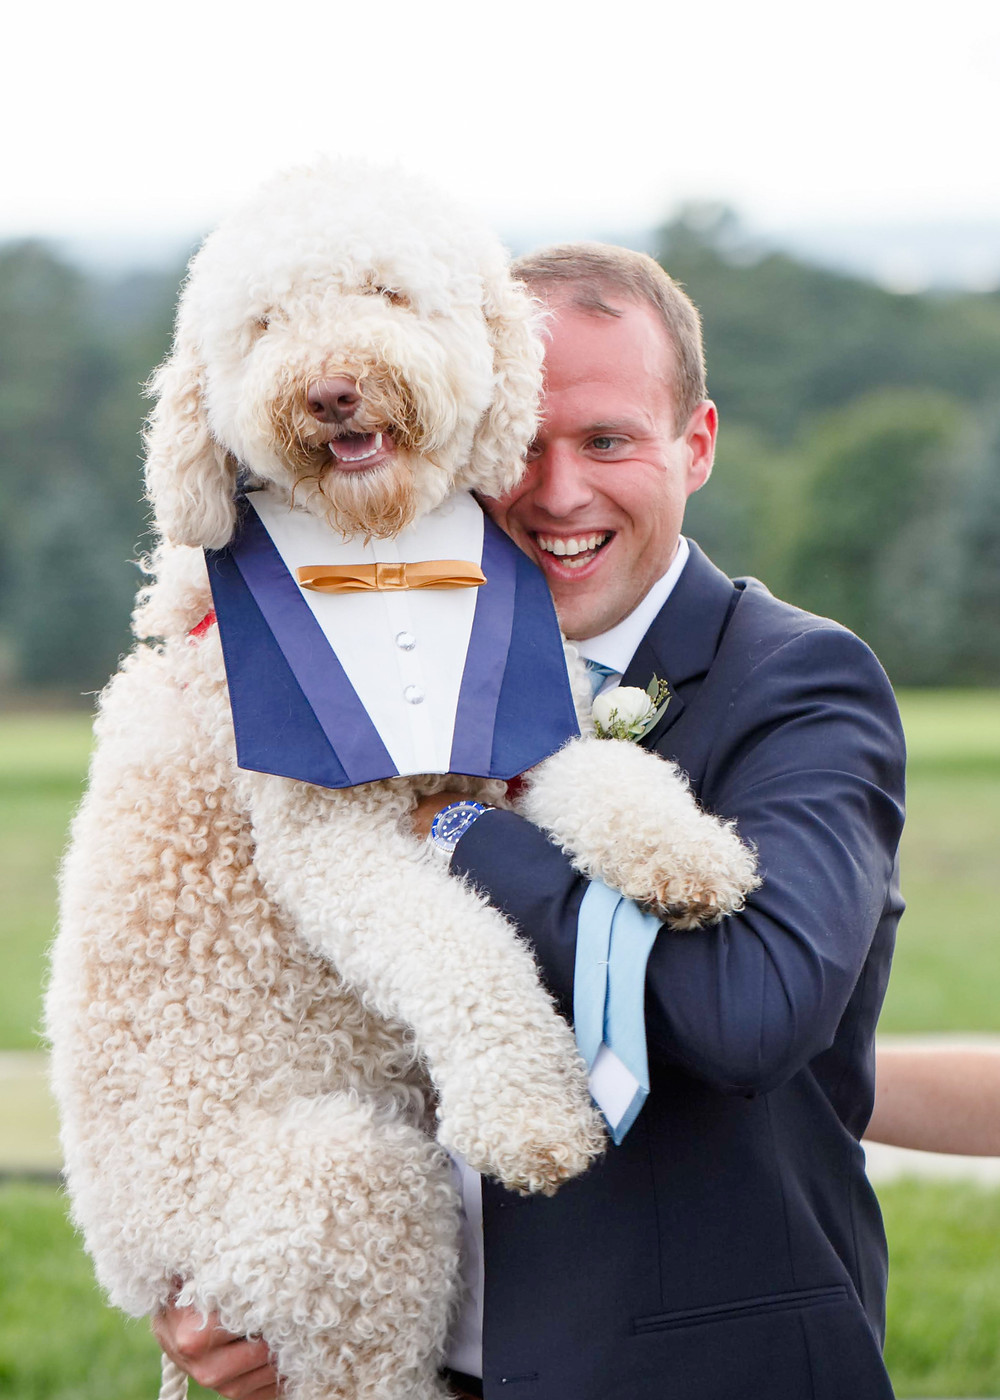 groom with dog at wedding